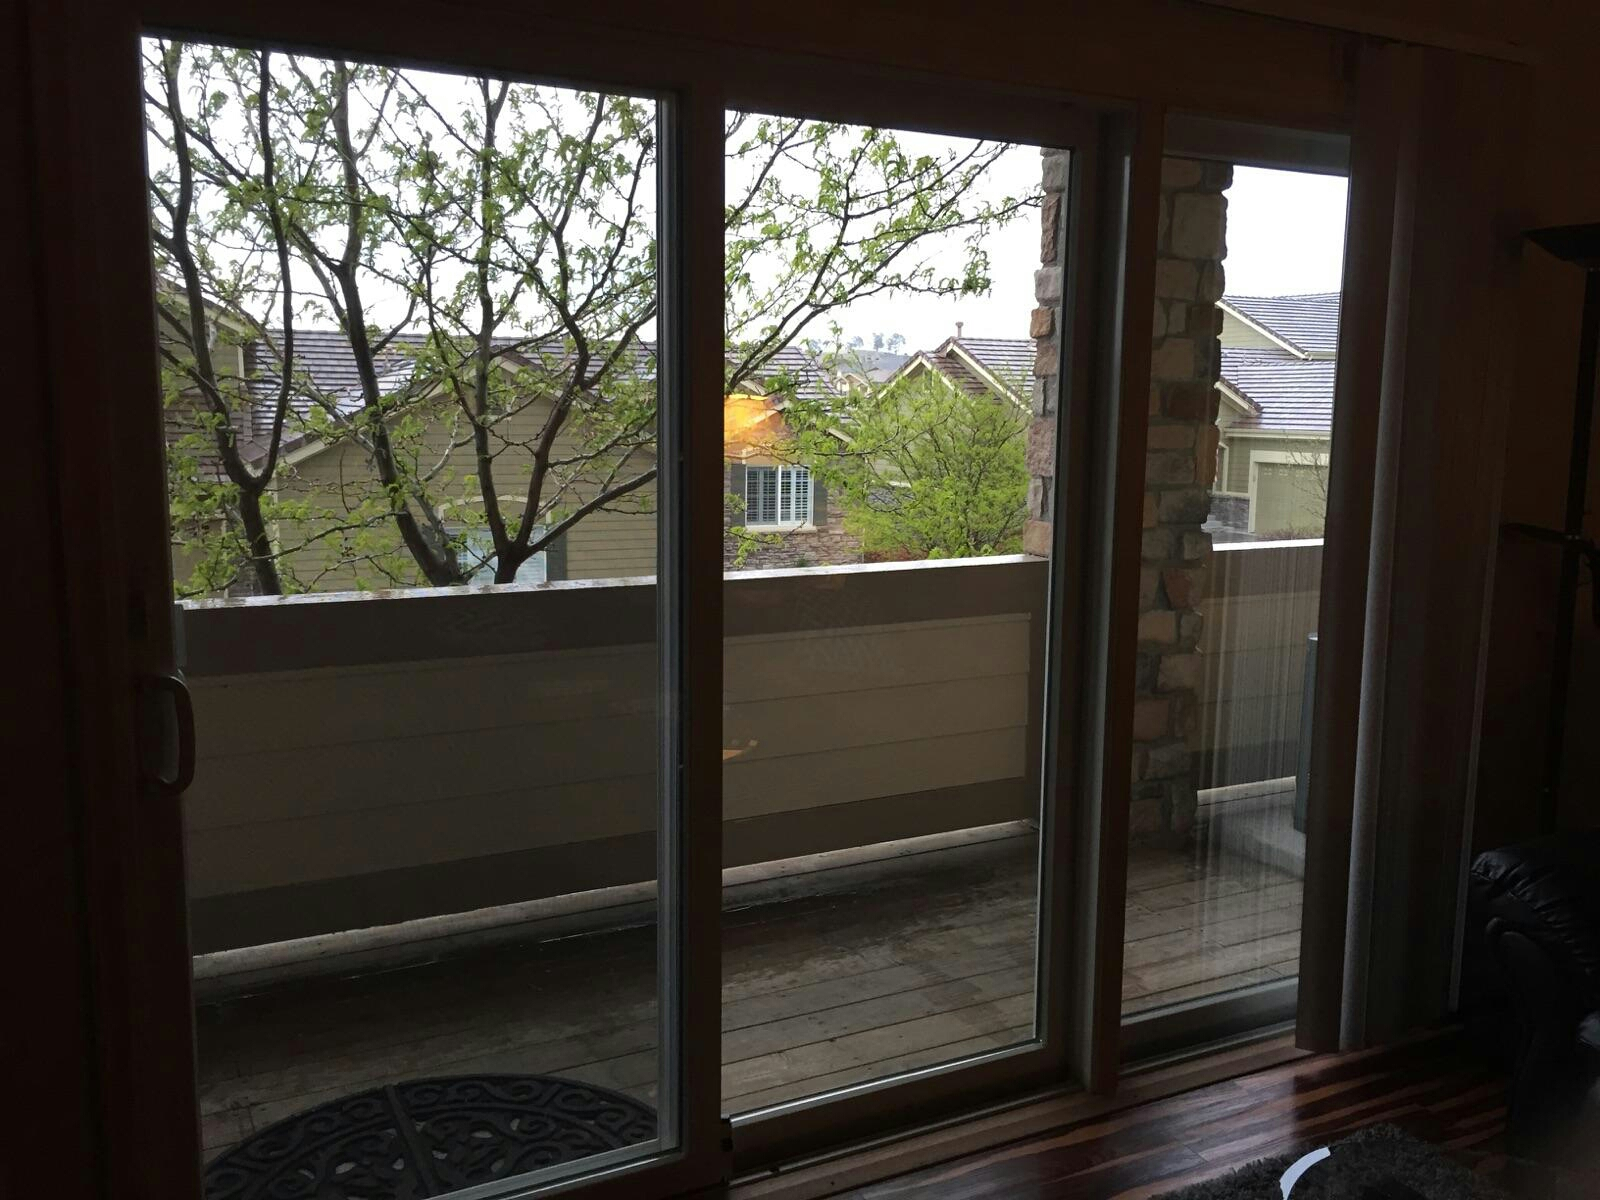 Aurora, CO - Renewal by Andersen Permashield gliding patio door. My customer says its a perfect addition to the house, the installers went above and beyond . The project manager was exceptional and she can't wait to do the windows next year. The street noise is finally silent and no more drafts